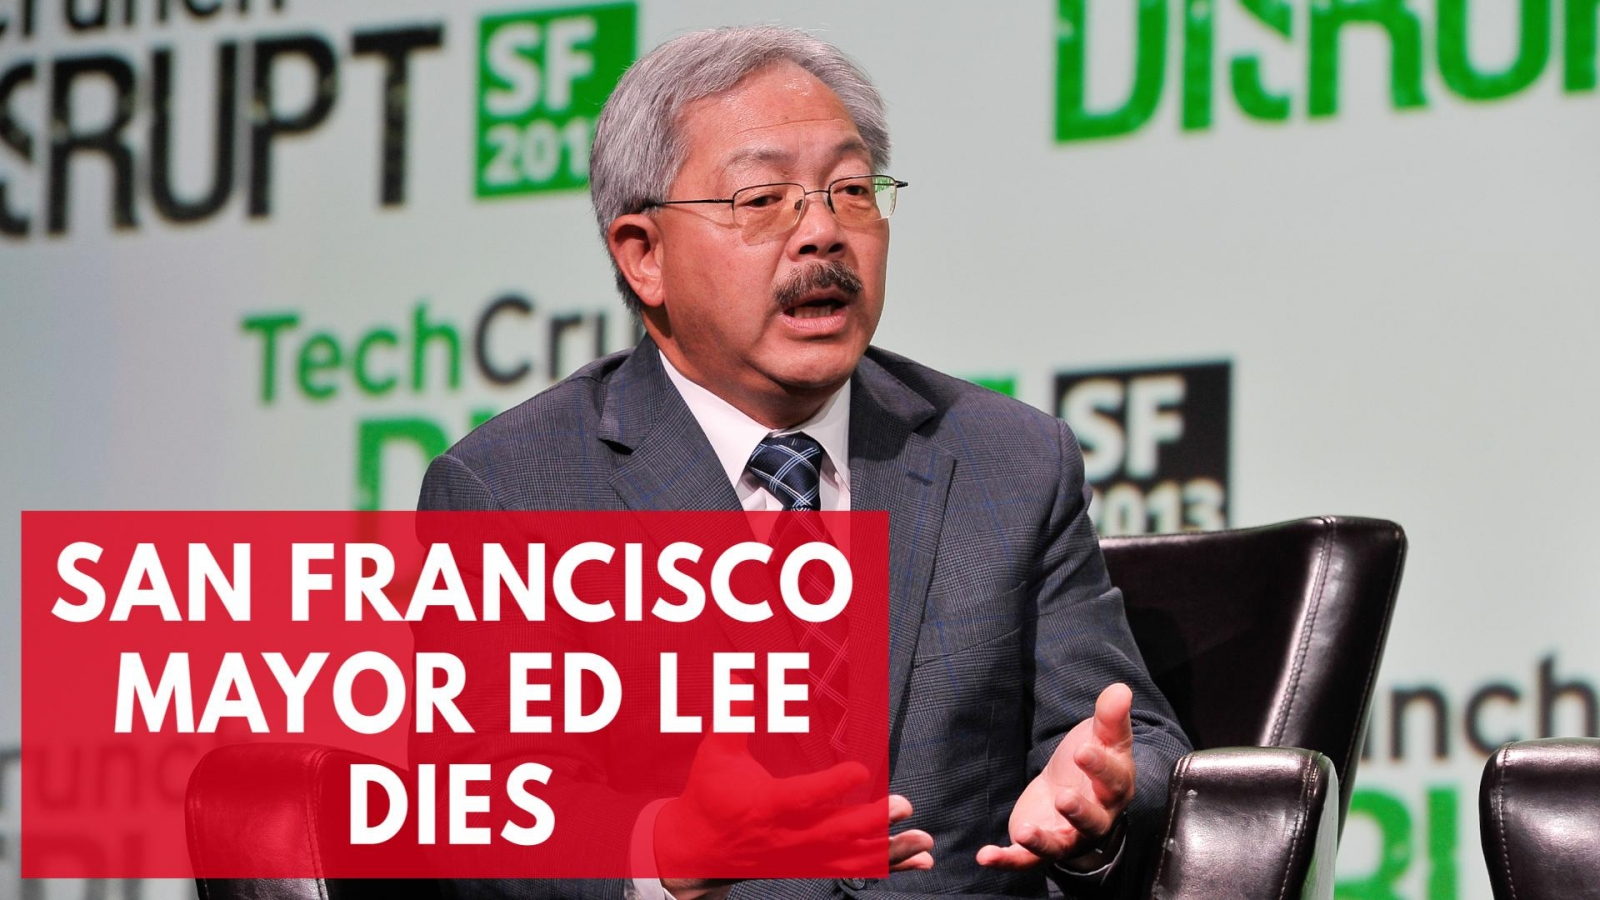 a-champion-of-the-people-san-francisco-mayor-ed-lee-dies-unexpectedly-at-65